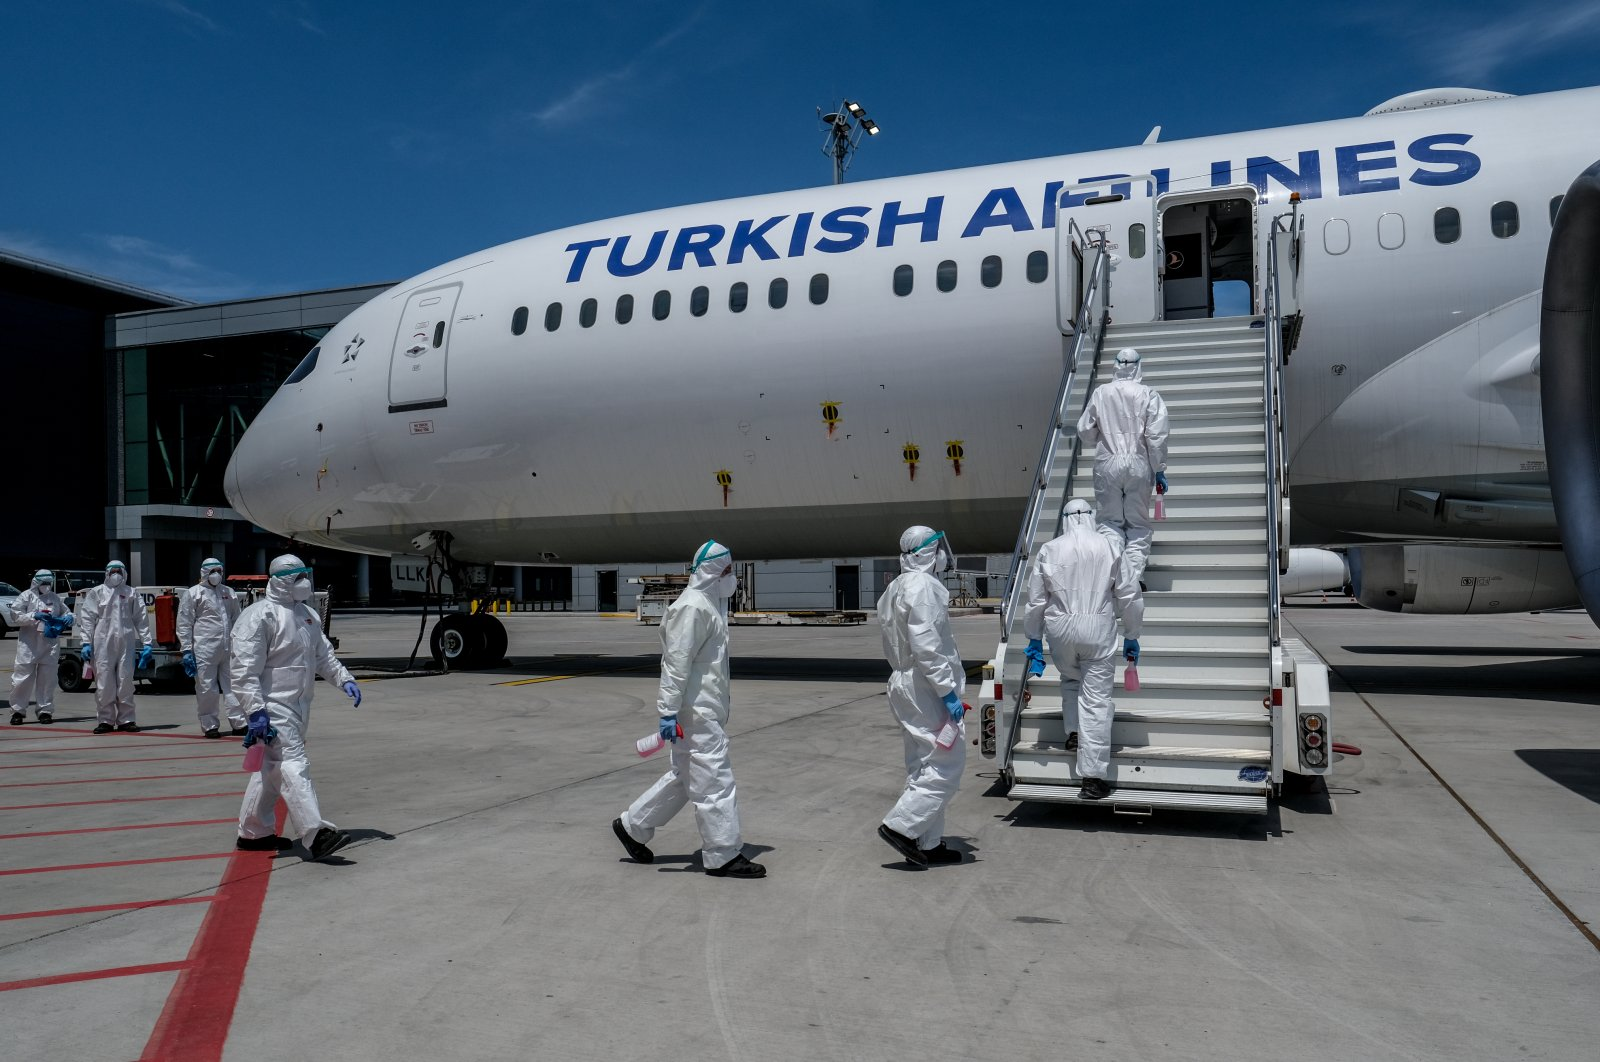 Workers enter a Turkish Airlines plane for disinfection in Istanbul, Turkey, June 2, 2020. (PHOTO BY UĞUR YILDIRIM)